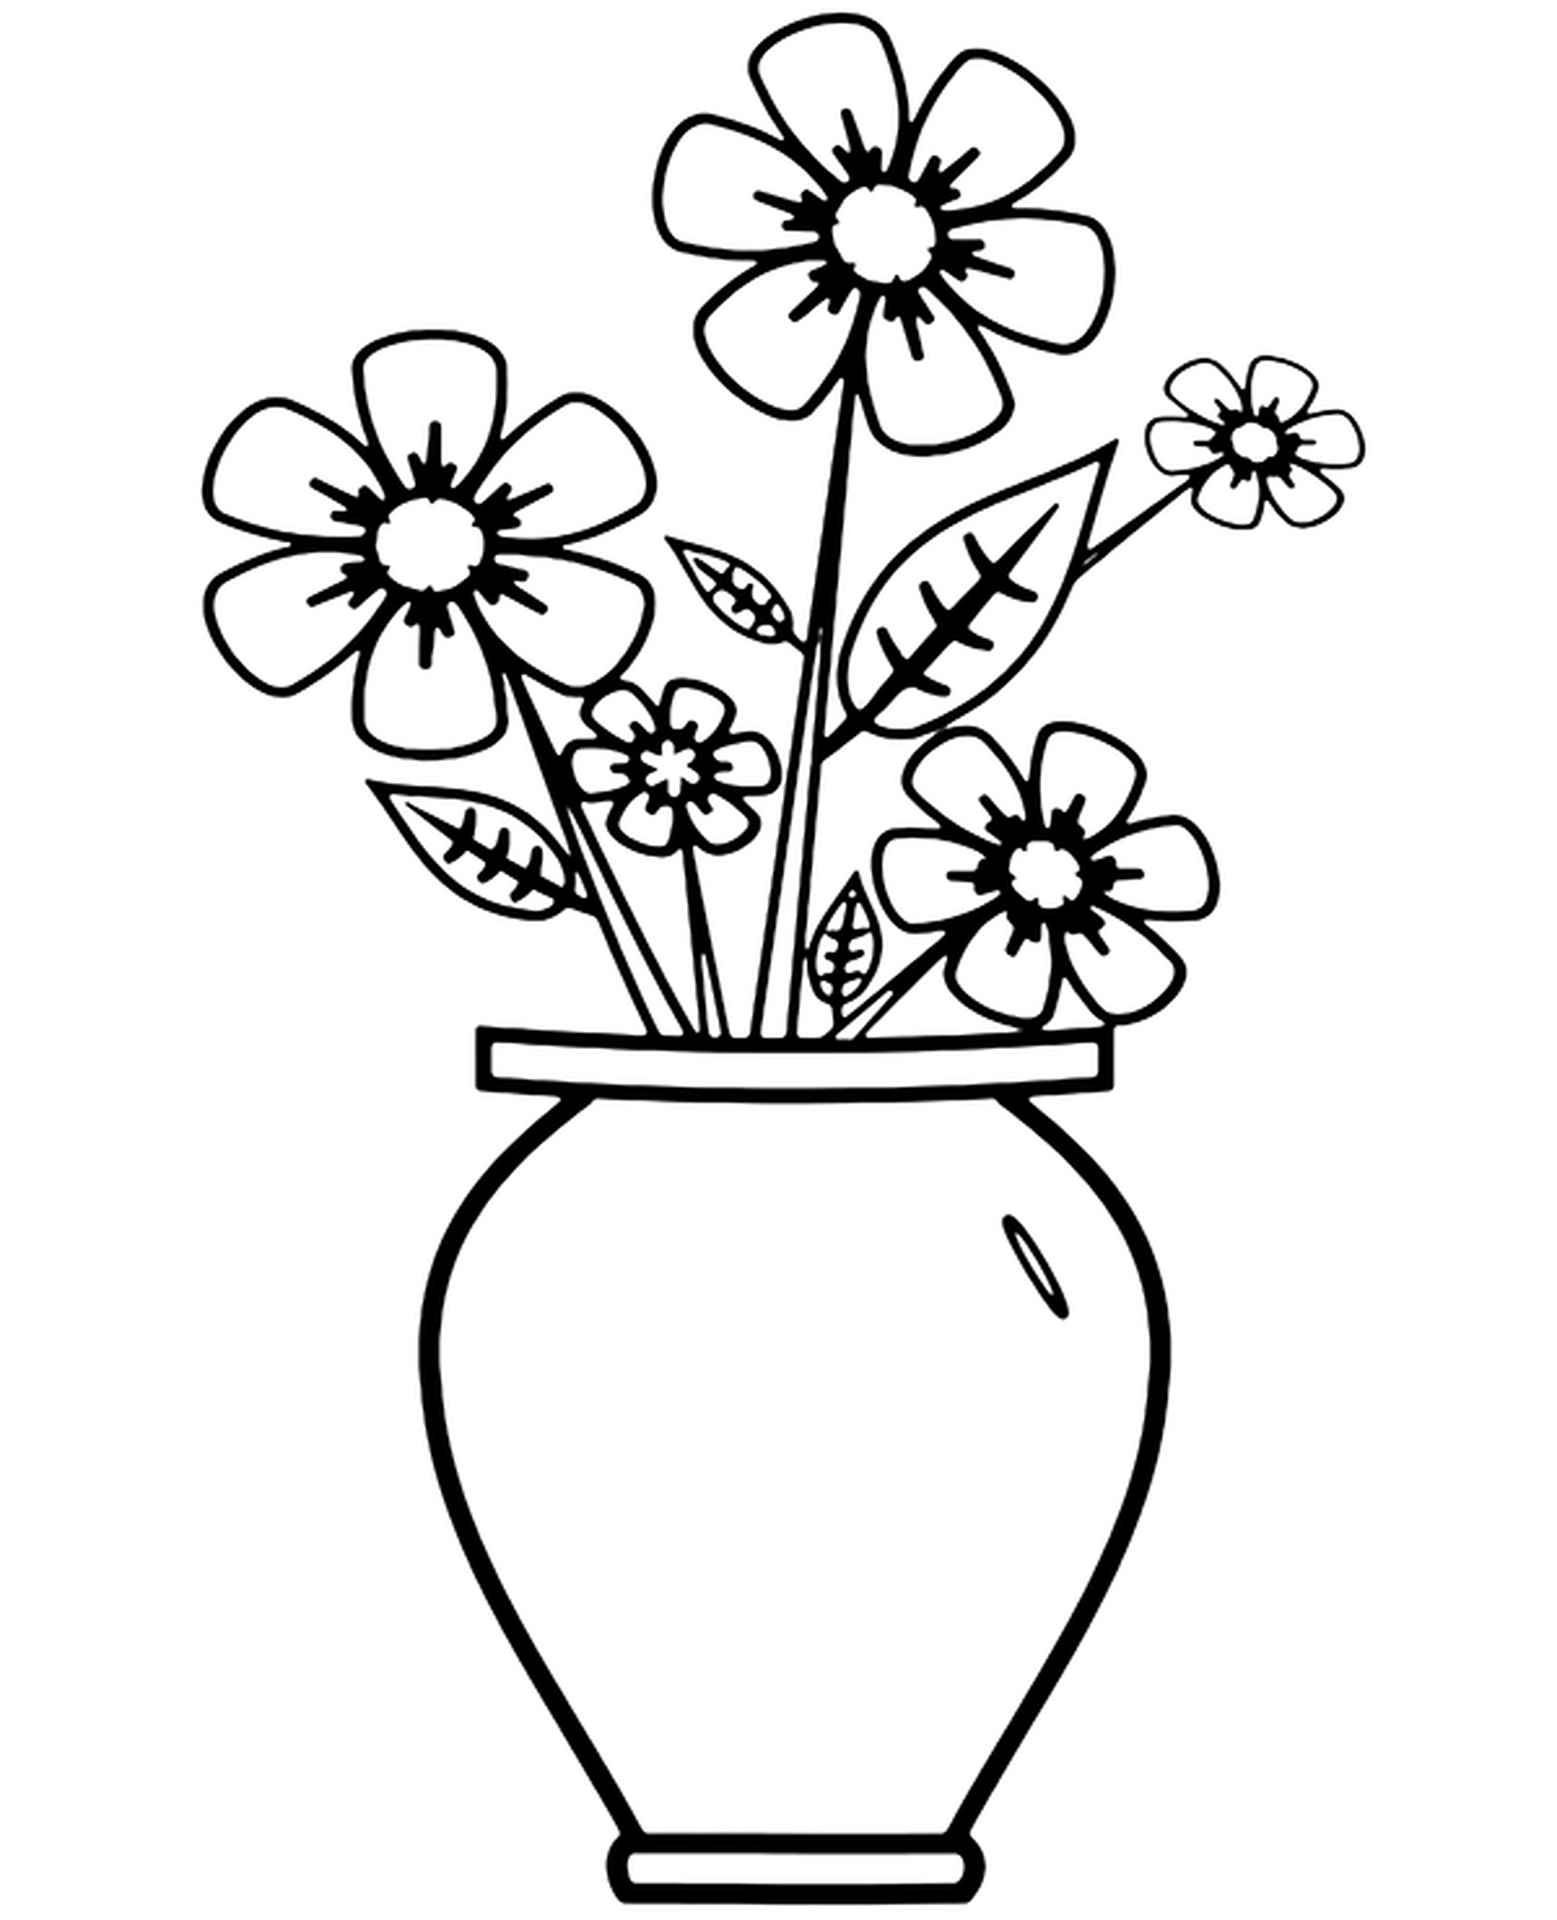 Coloring Pages Of Spring Flowers In A Vase